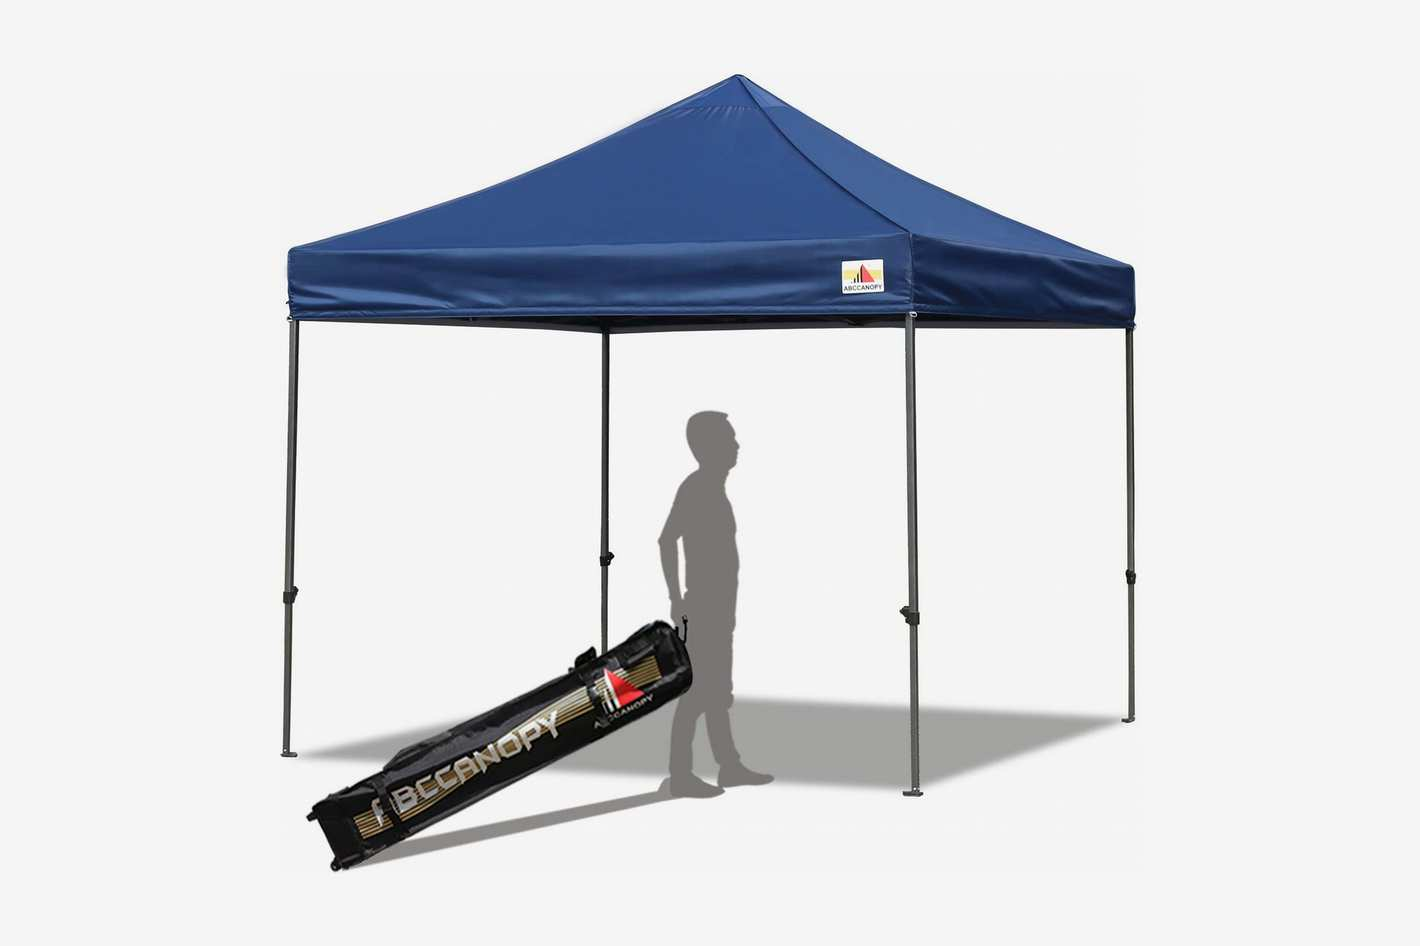 ABCCANOPY Pop Up Commercial Canopy Tent with Wheeled Carry Bag, 10-feet by 10-feet